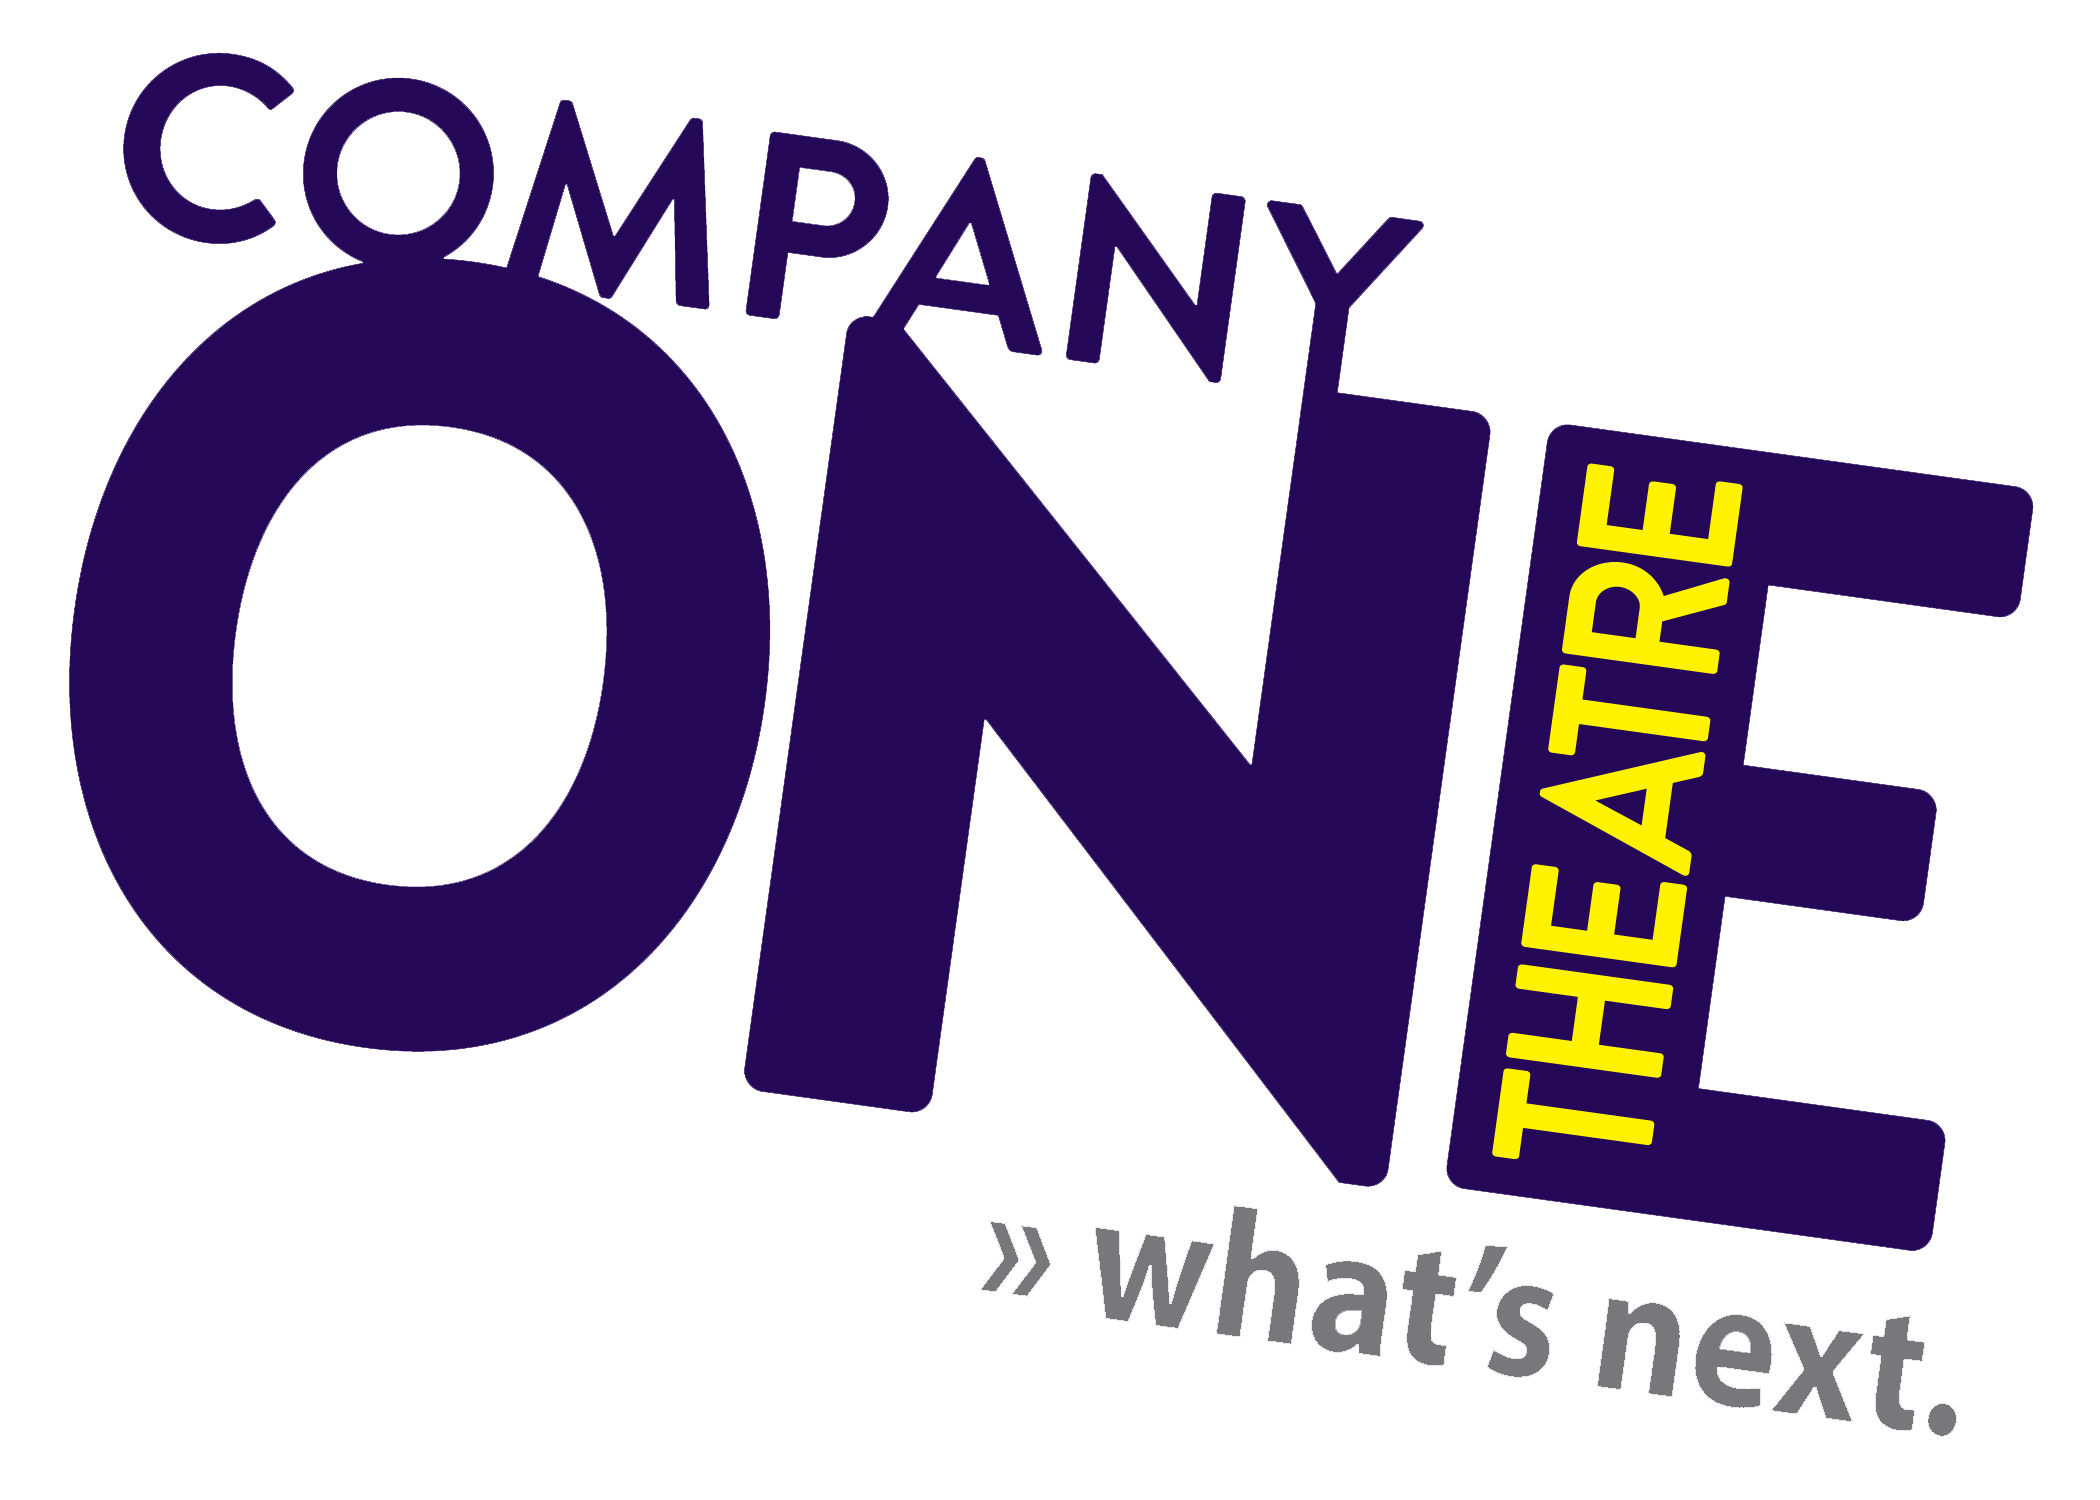 Company One Theatre - I am the Assistant to the Artistic Director at Company One